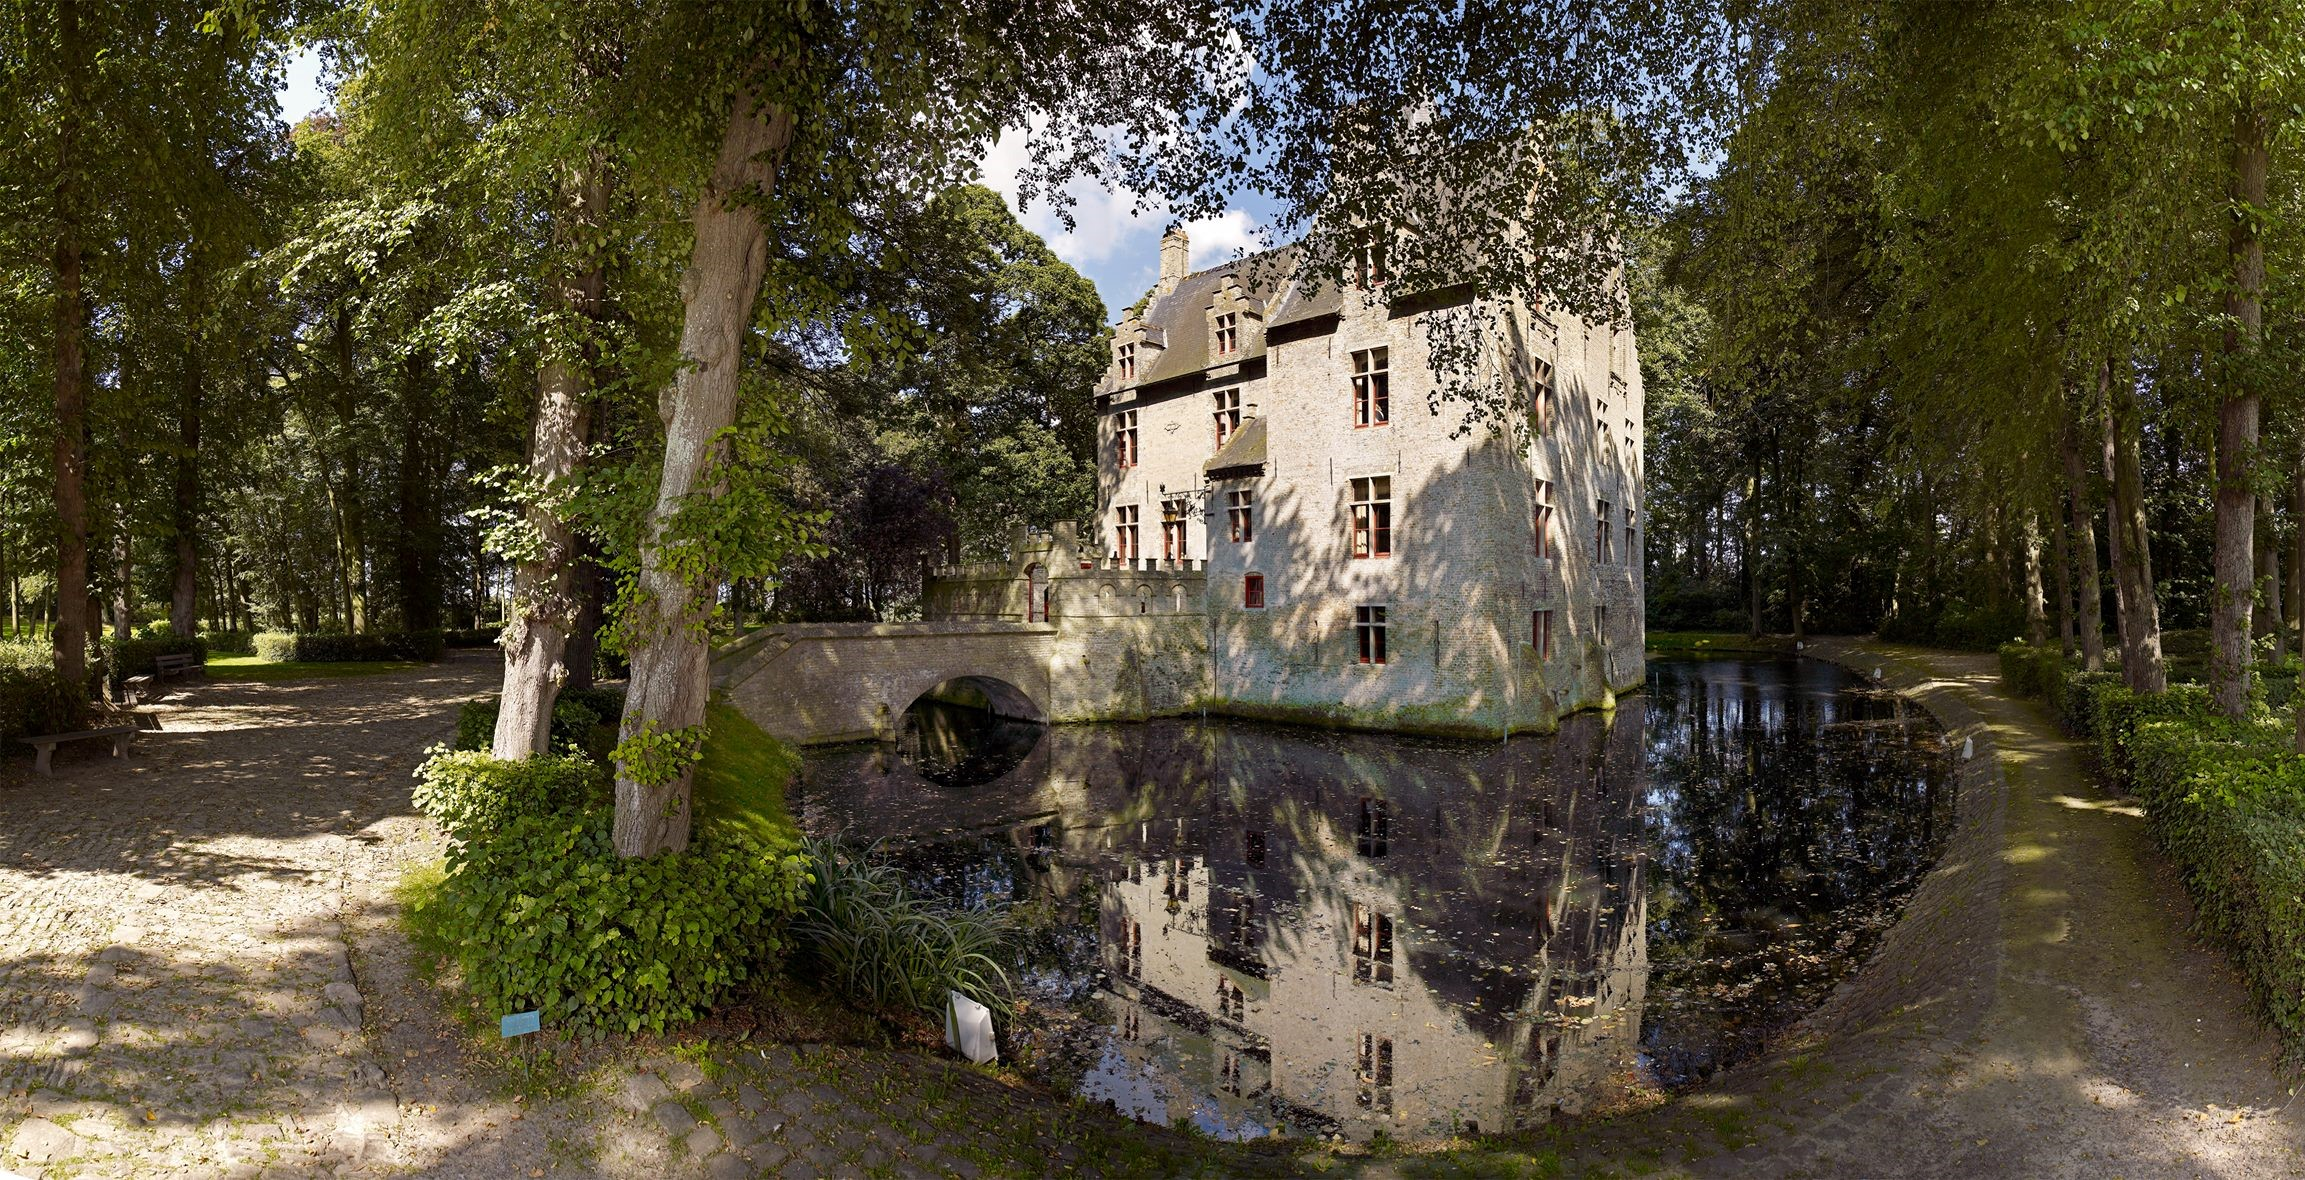 Beauvoorde Castle near Veurne, Belgium